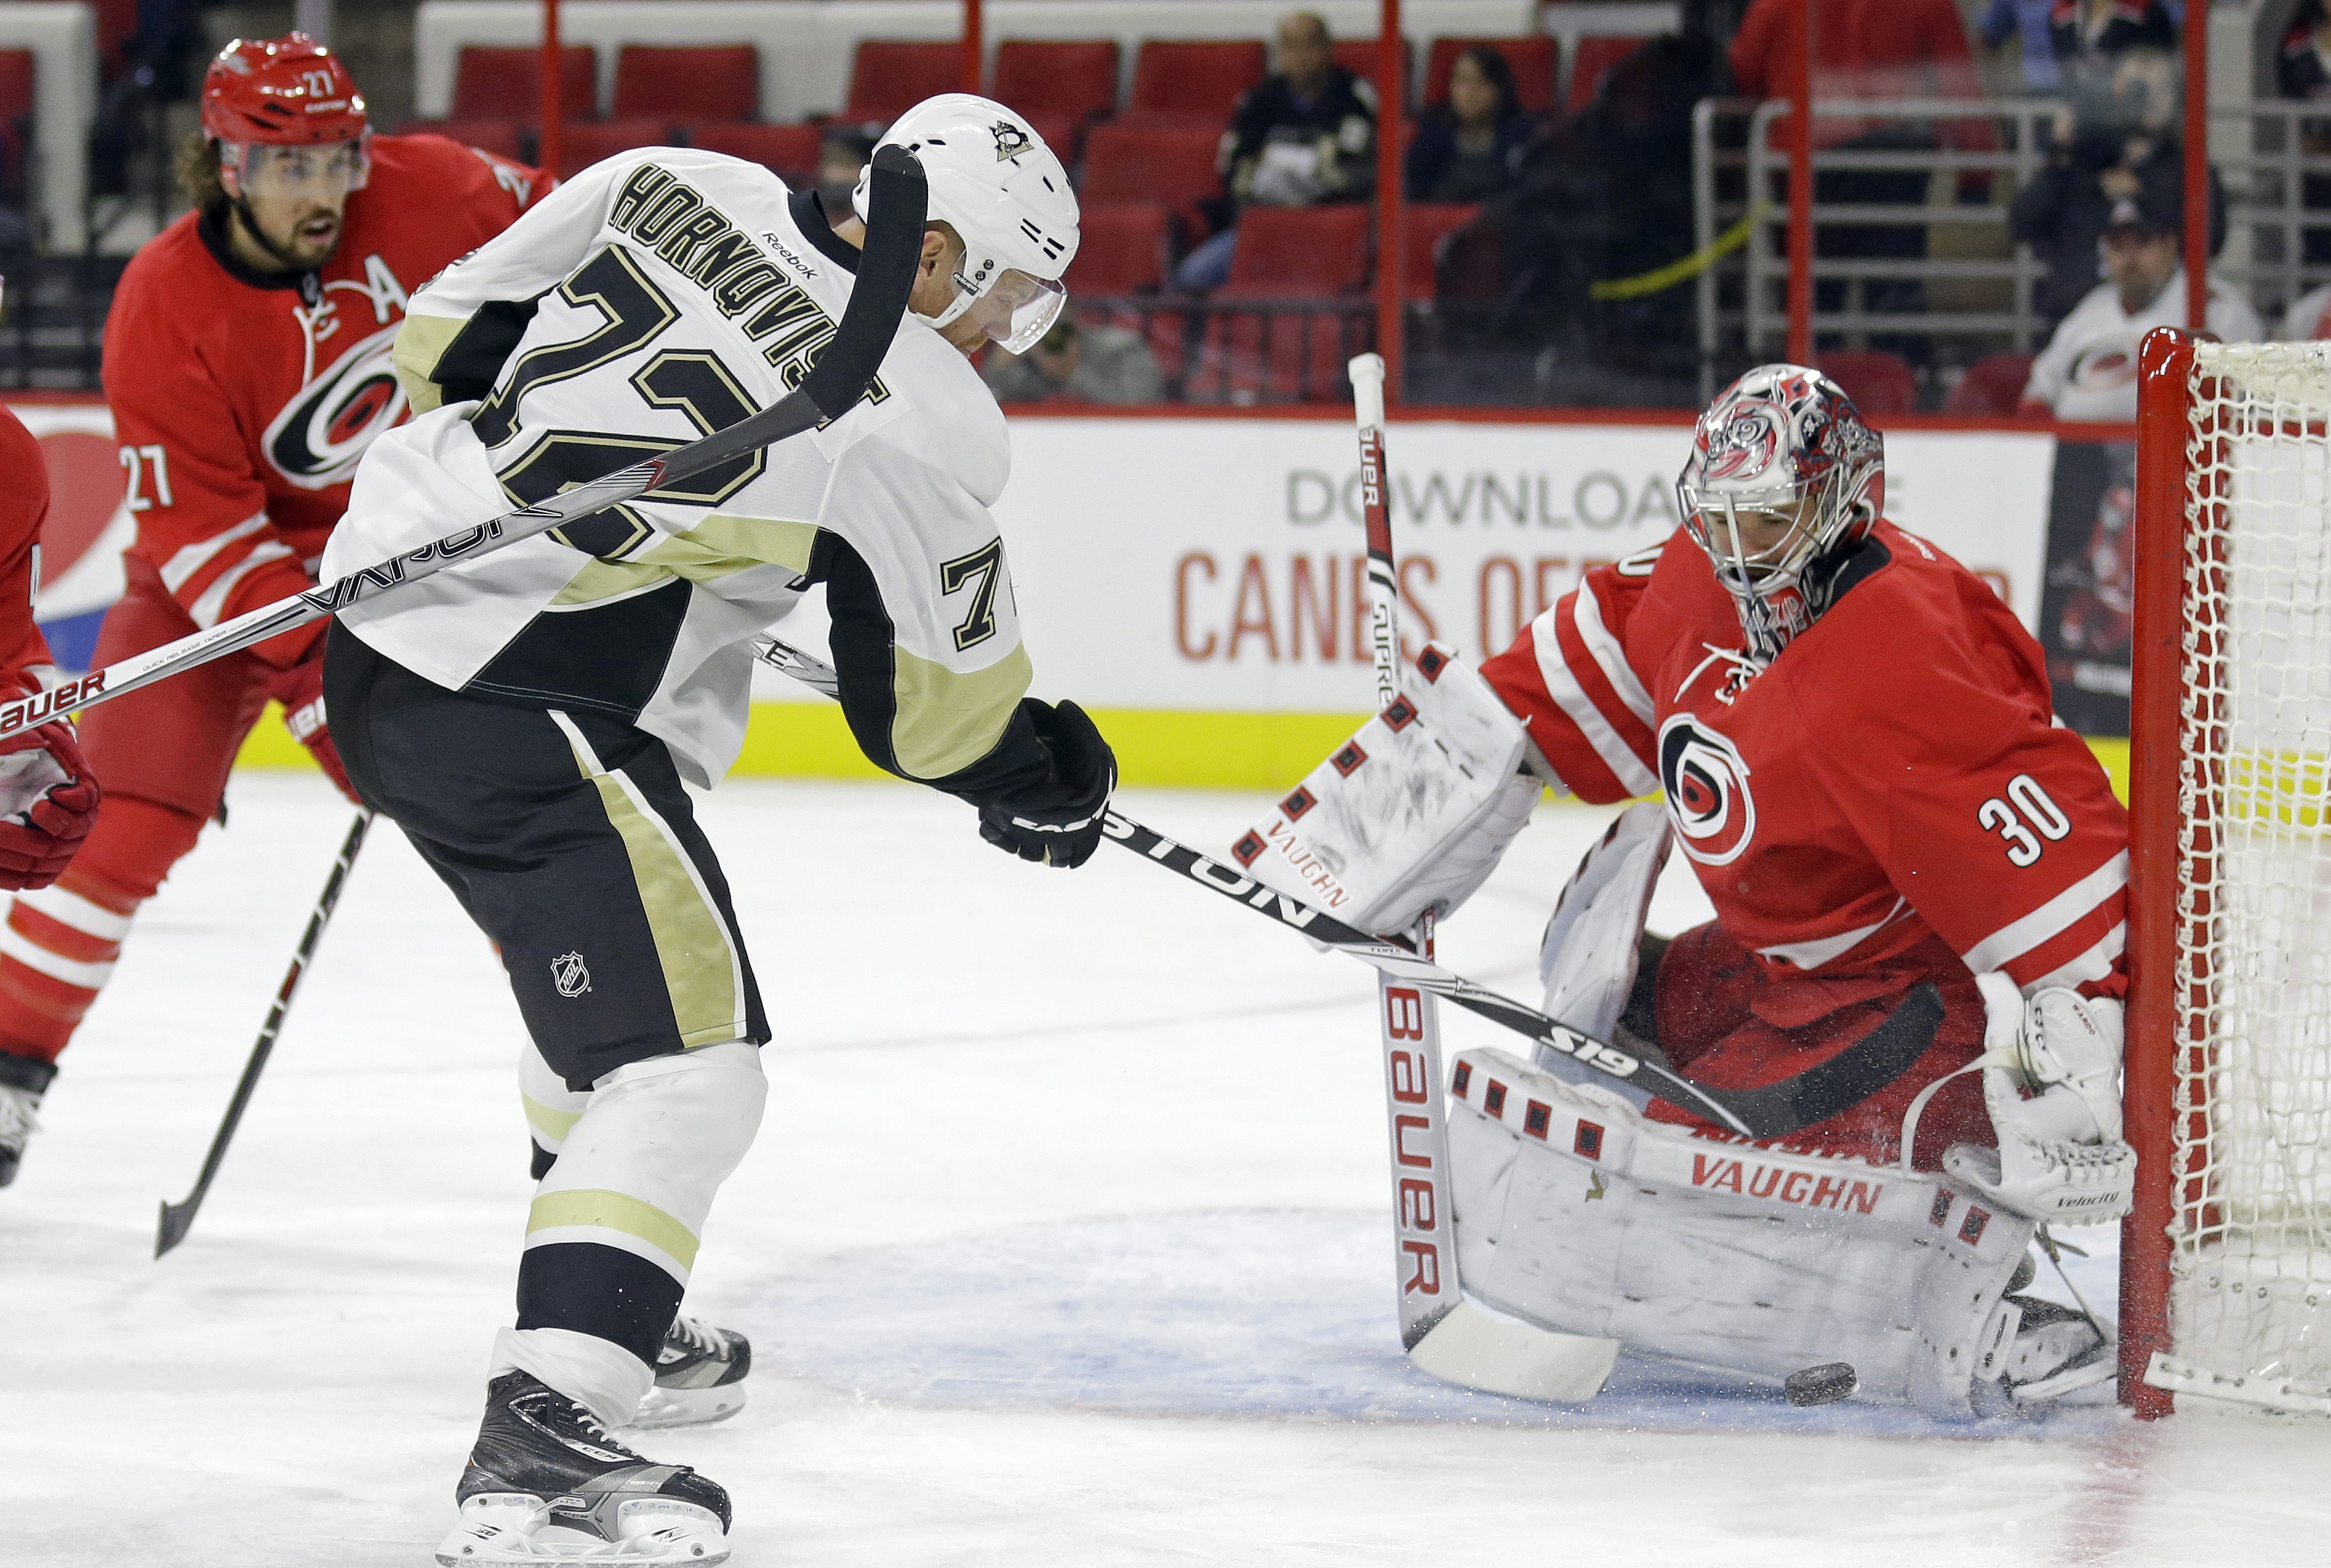 Carolina Hurricanes goalie Cam Ward (30) defends against Pittsburgh Penguins' Patric Hornqvist (72), of Sweden, during the first period of an NHL preseason hockey game in Raleigh, N.C., Friday, Oct. 2, 2015. (AP Photo/Gerry Broome)